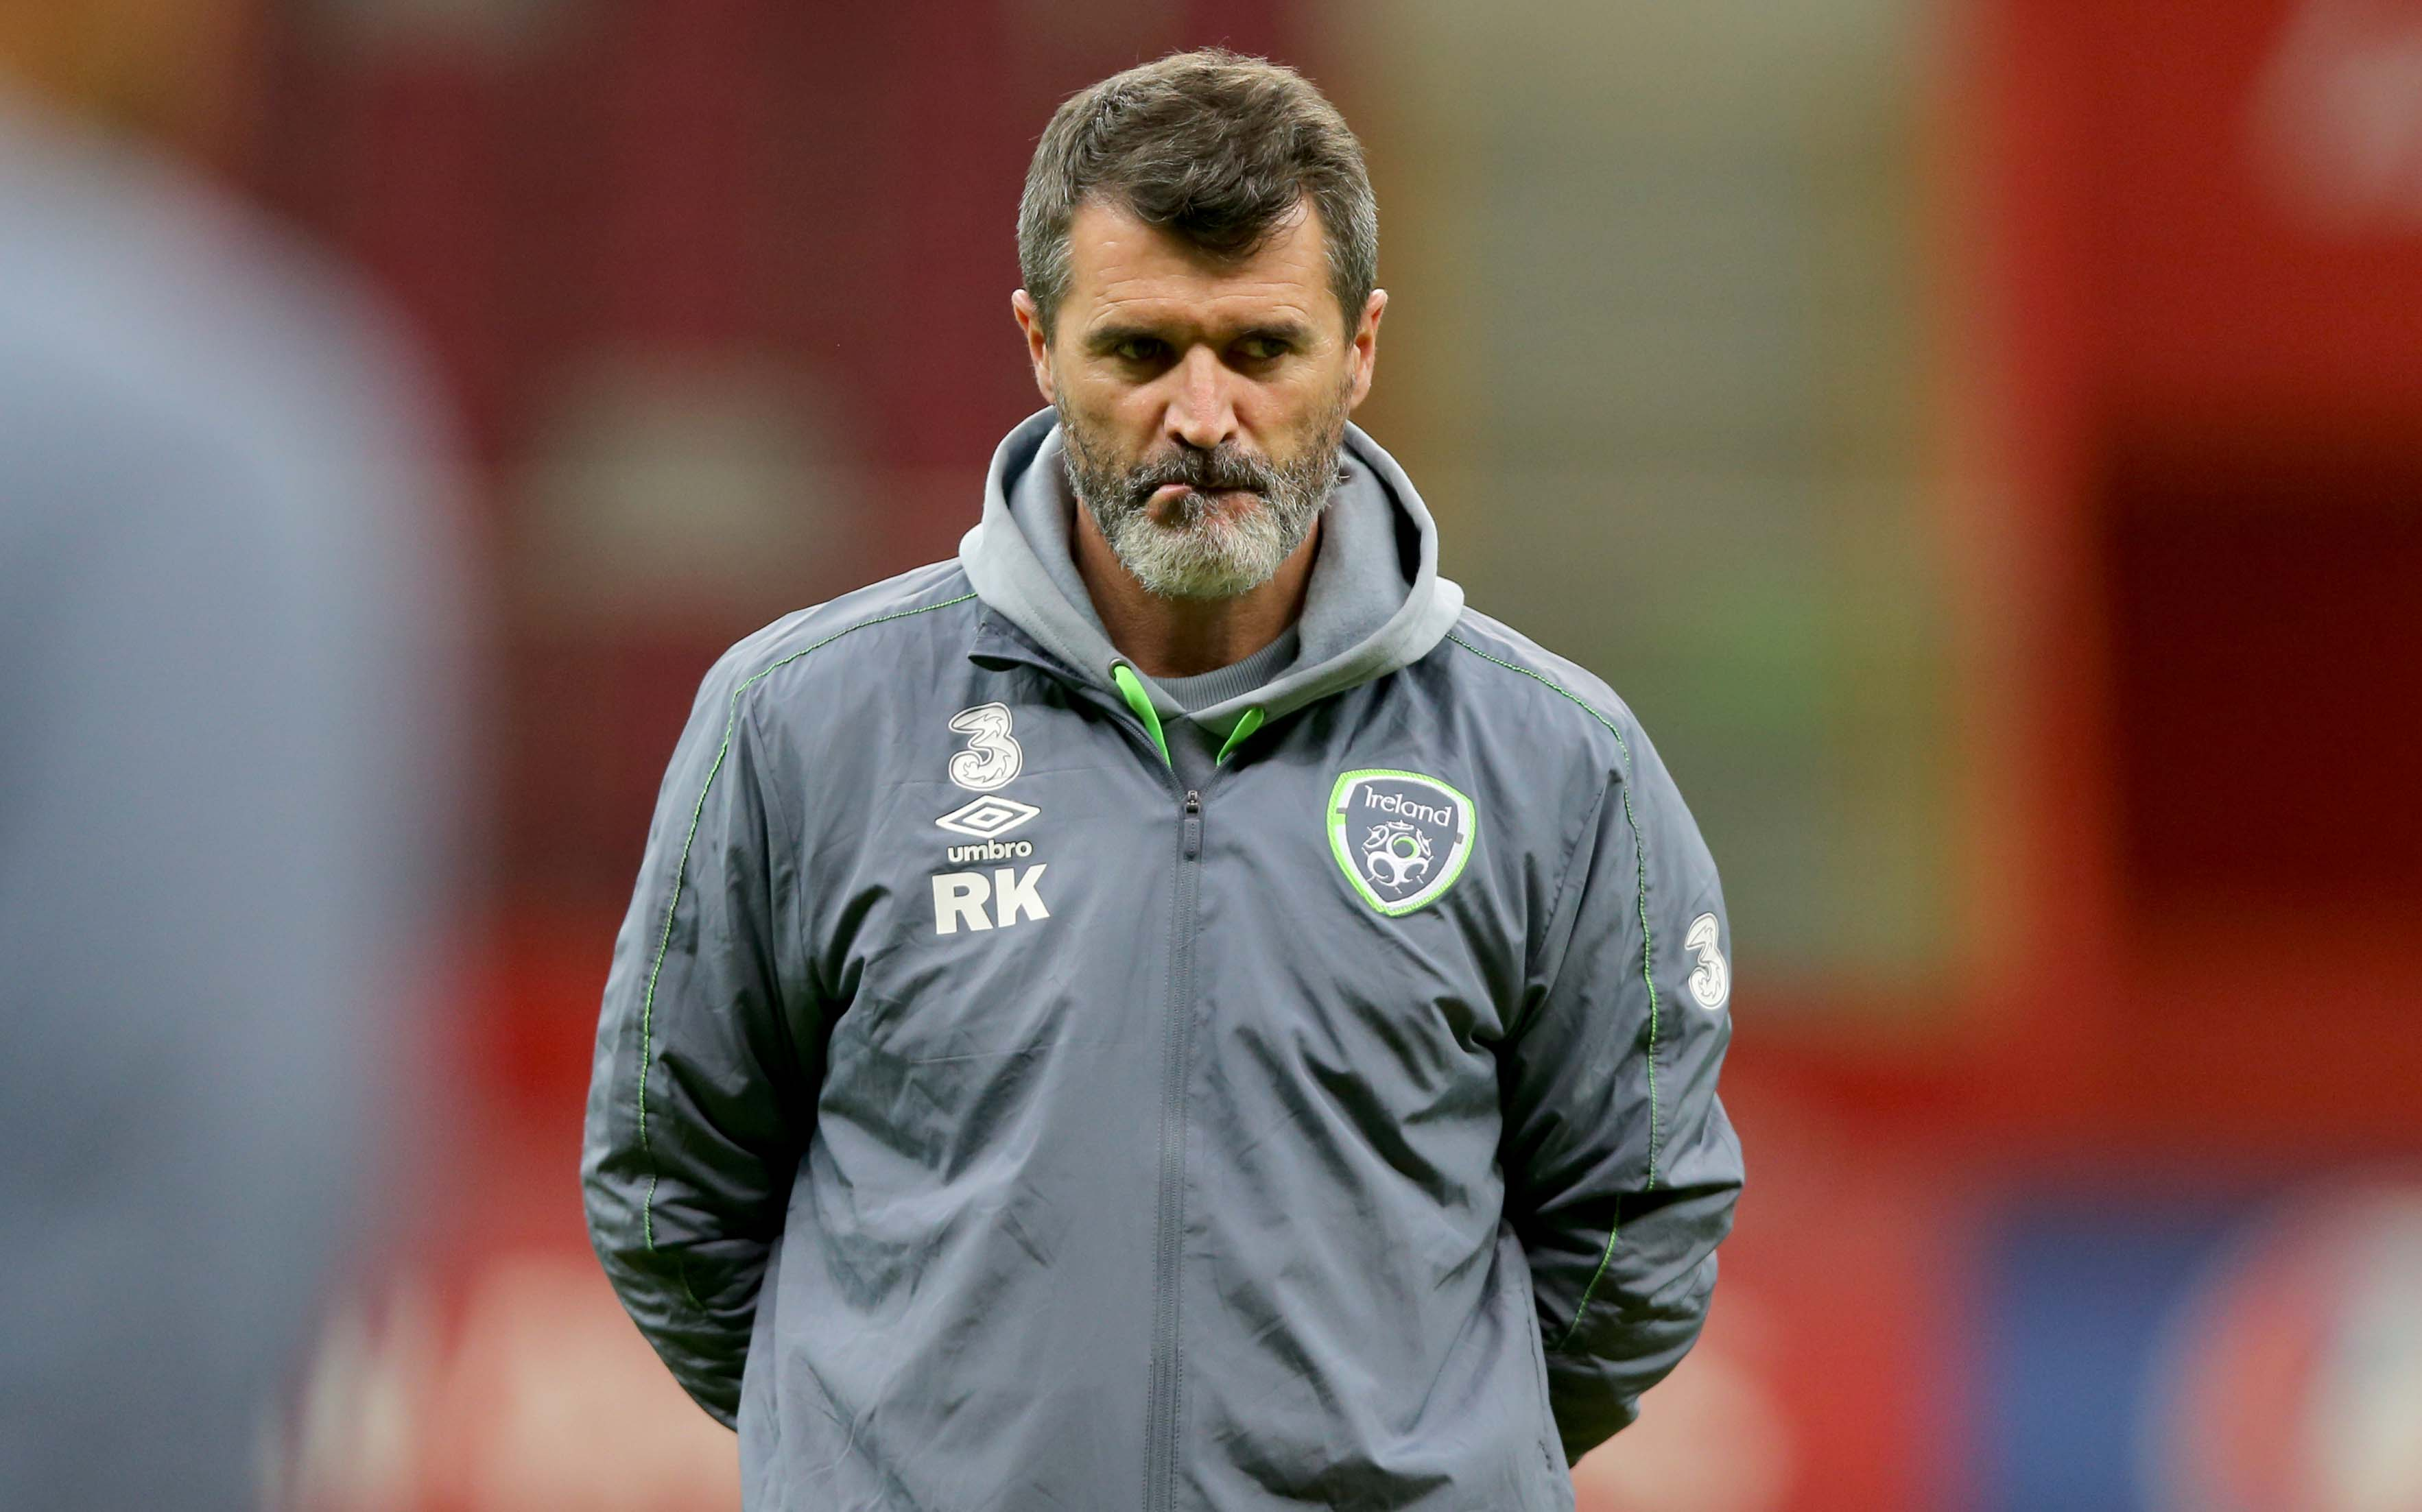 Roy Keane tells kids to throw their mobile phones in the bin and